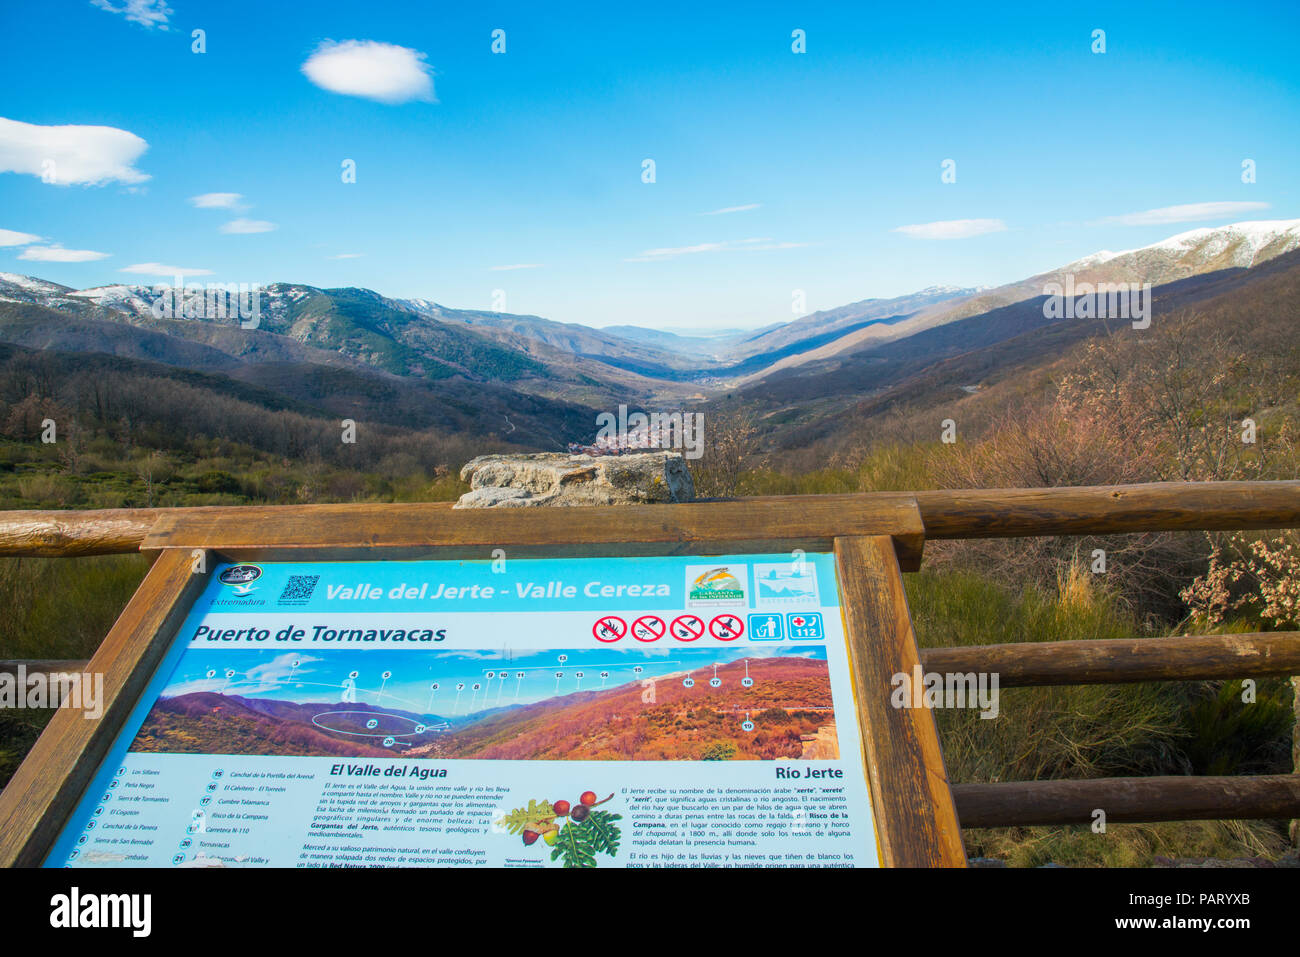 Viewpoint.Tornavacas mountain pass, Caceres province, Extremadura, Spain. - Stock Image